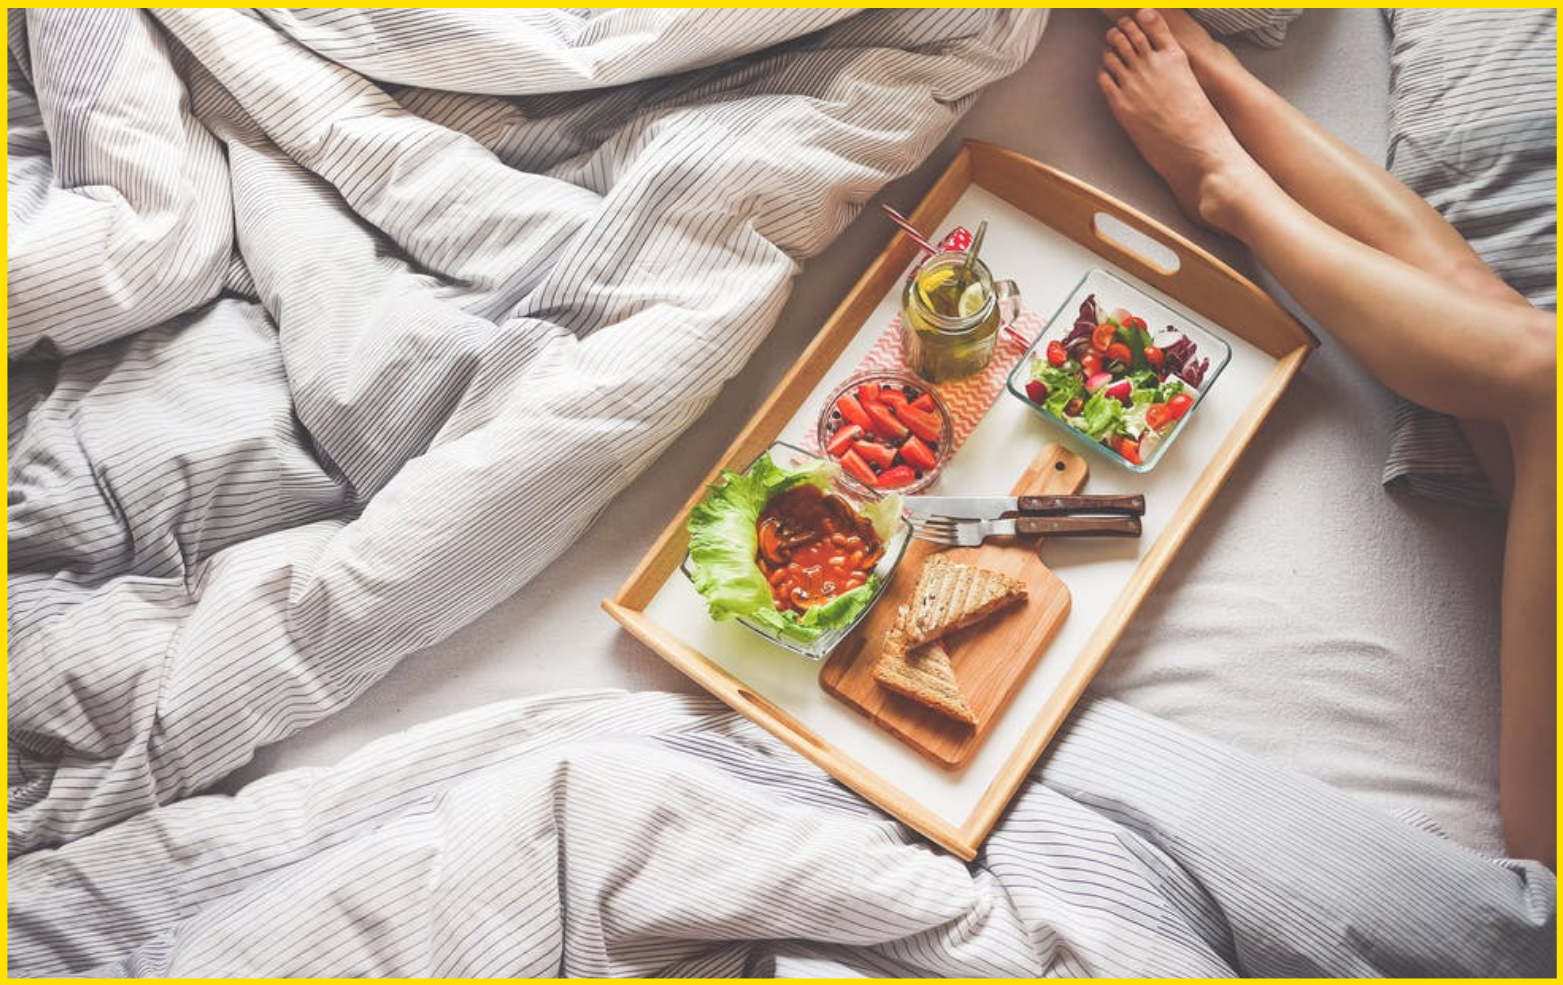 Great in Bed: Foods to Eat for Better Vitality